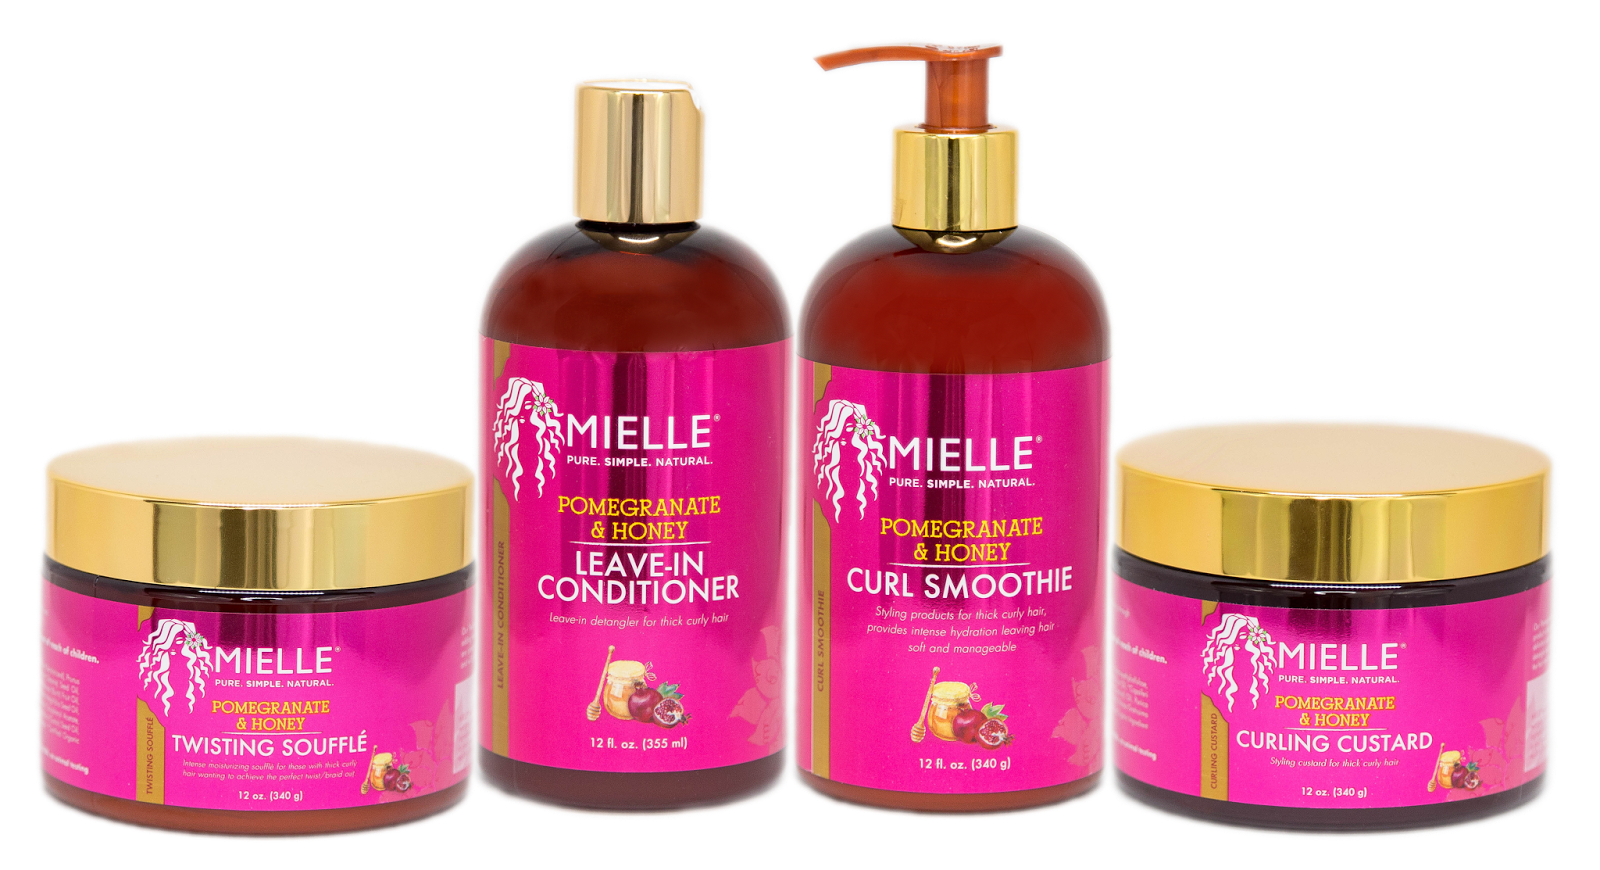 And The Winners Of The Mielle Organics Pomegranate & Honey Hair Care Bundles Are...